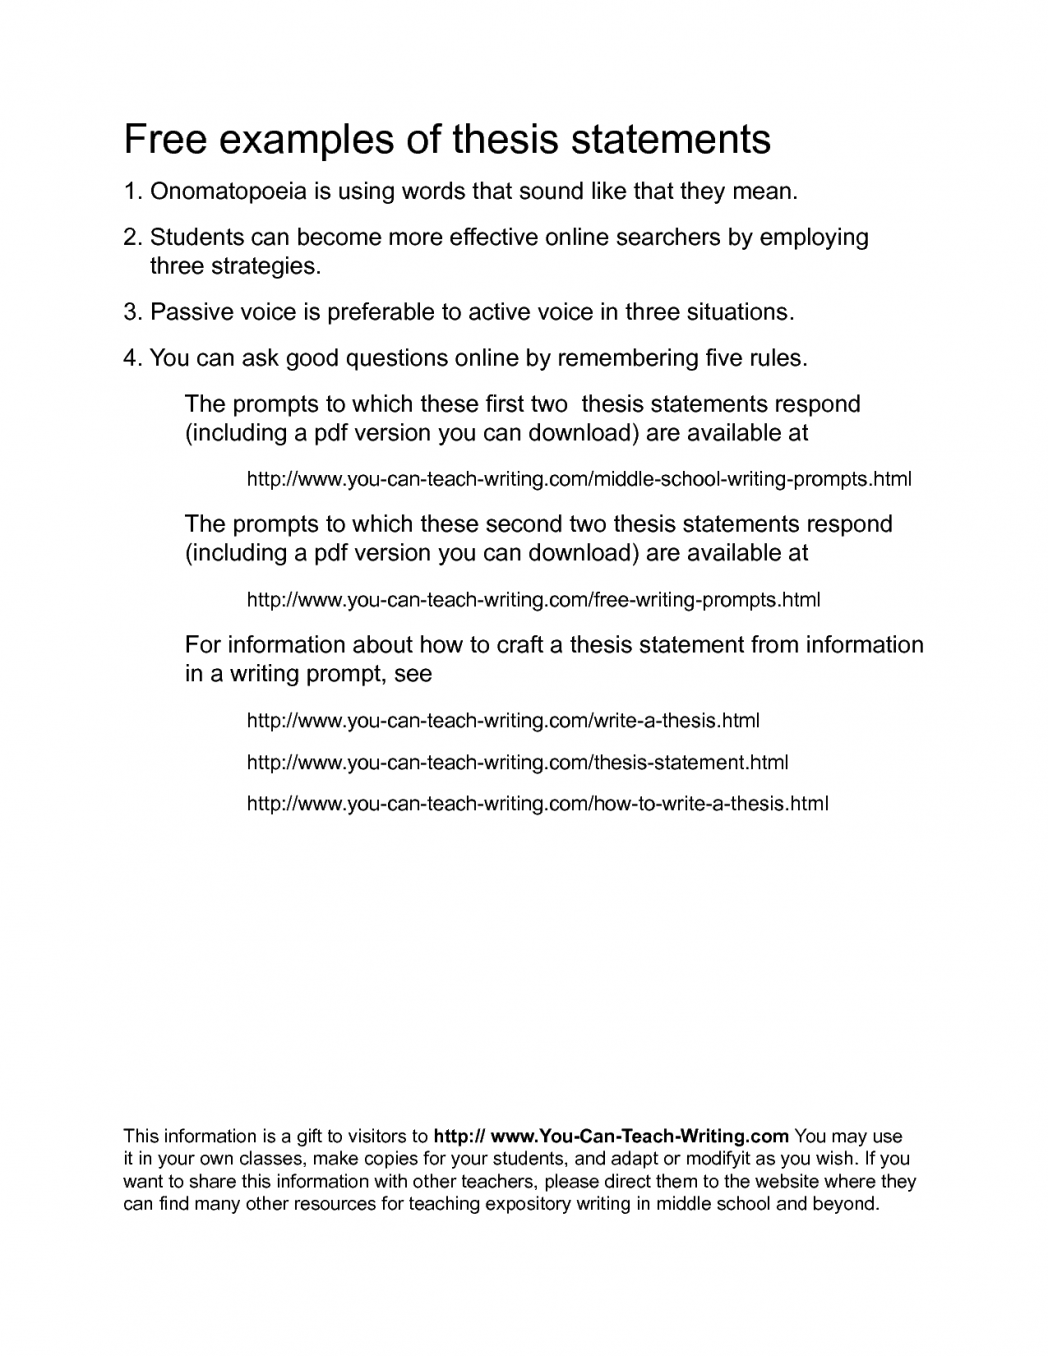 009 Essay Example Goodersuasive Topics For Middle School Thesis Abouturpose Of Statement Template Wwe Speech Uniforms Issues Education Rules Uniform Argumentative High 1048x1356 What Is The Beautiful Purpose A Persuasive Structure Format Brainly Full